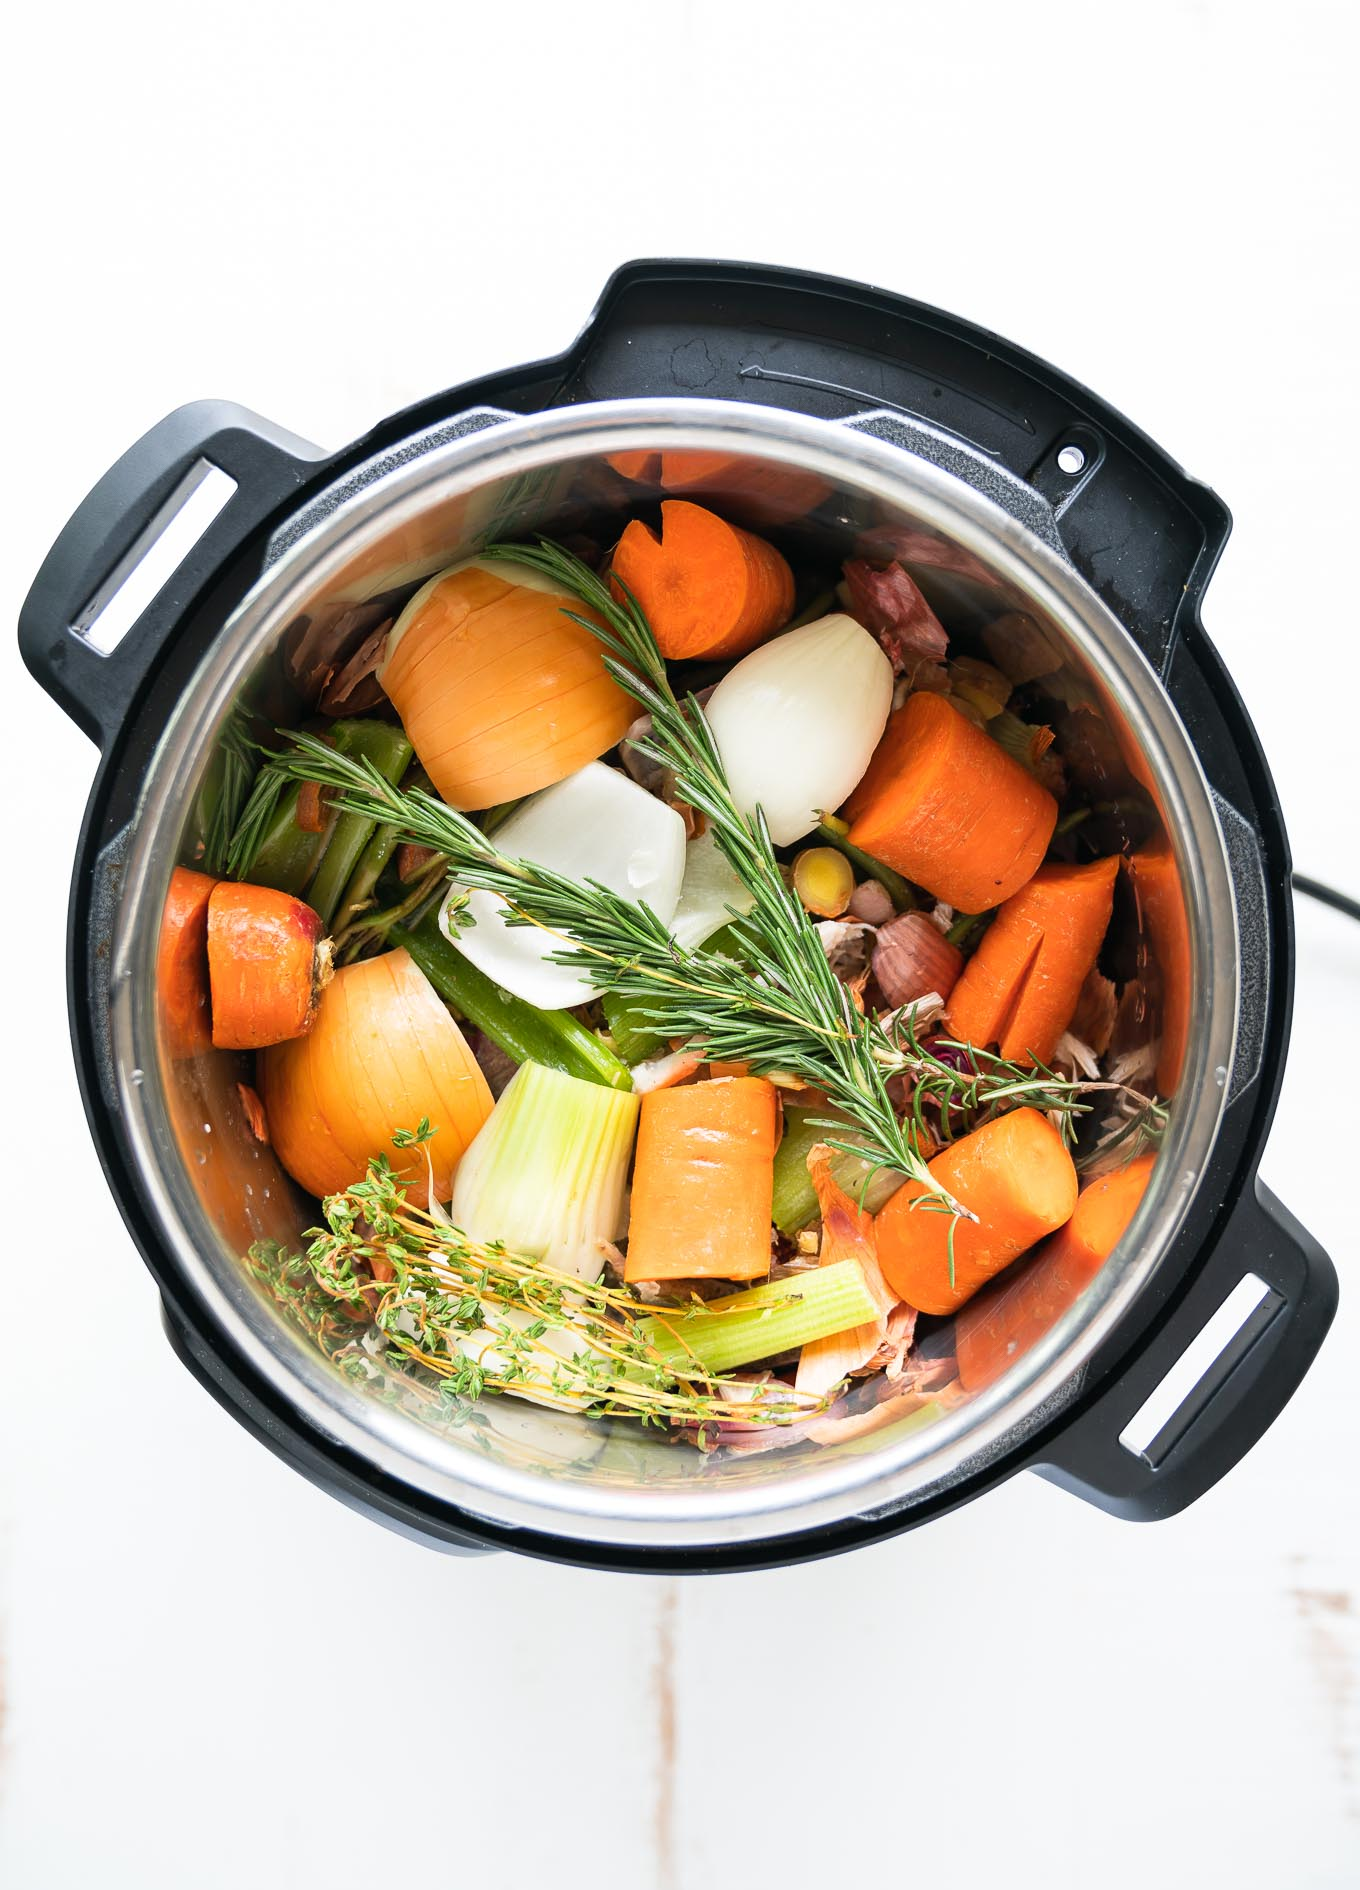 Instant Pot Bone Broth with vegetables inside pot